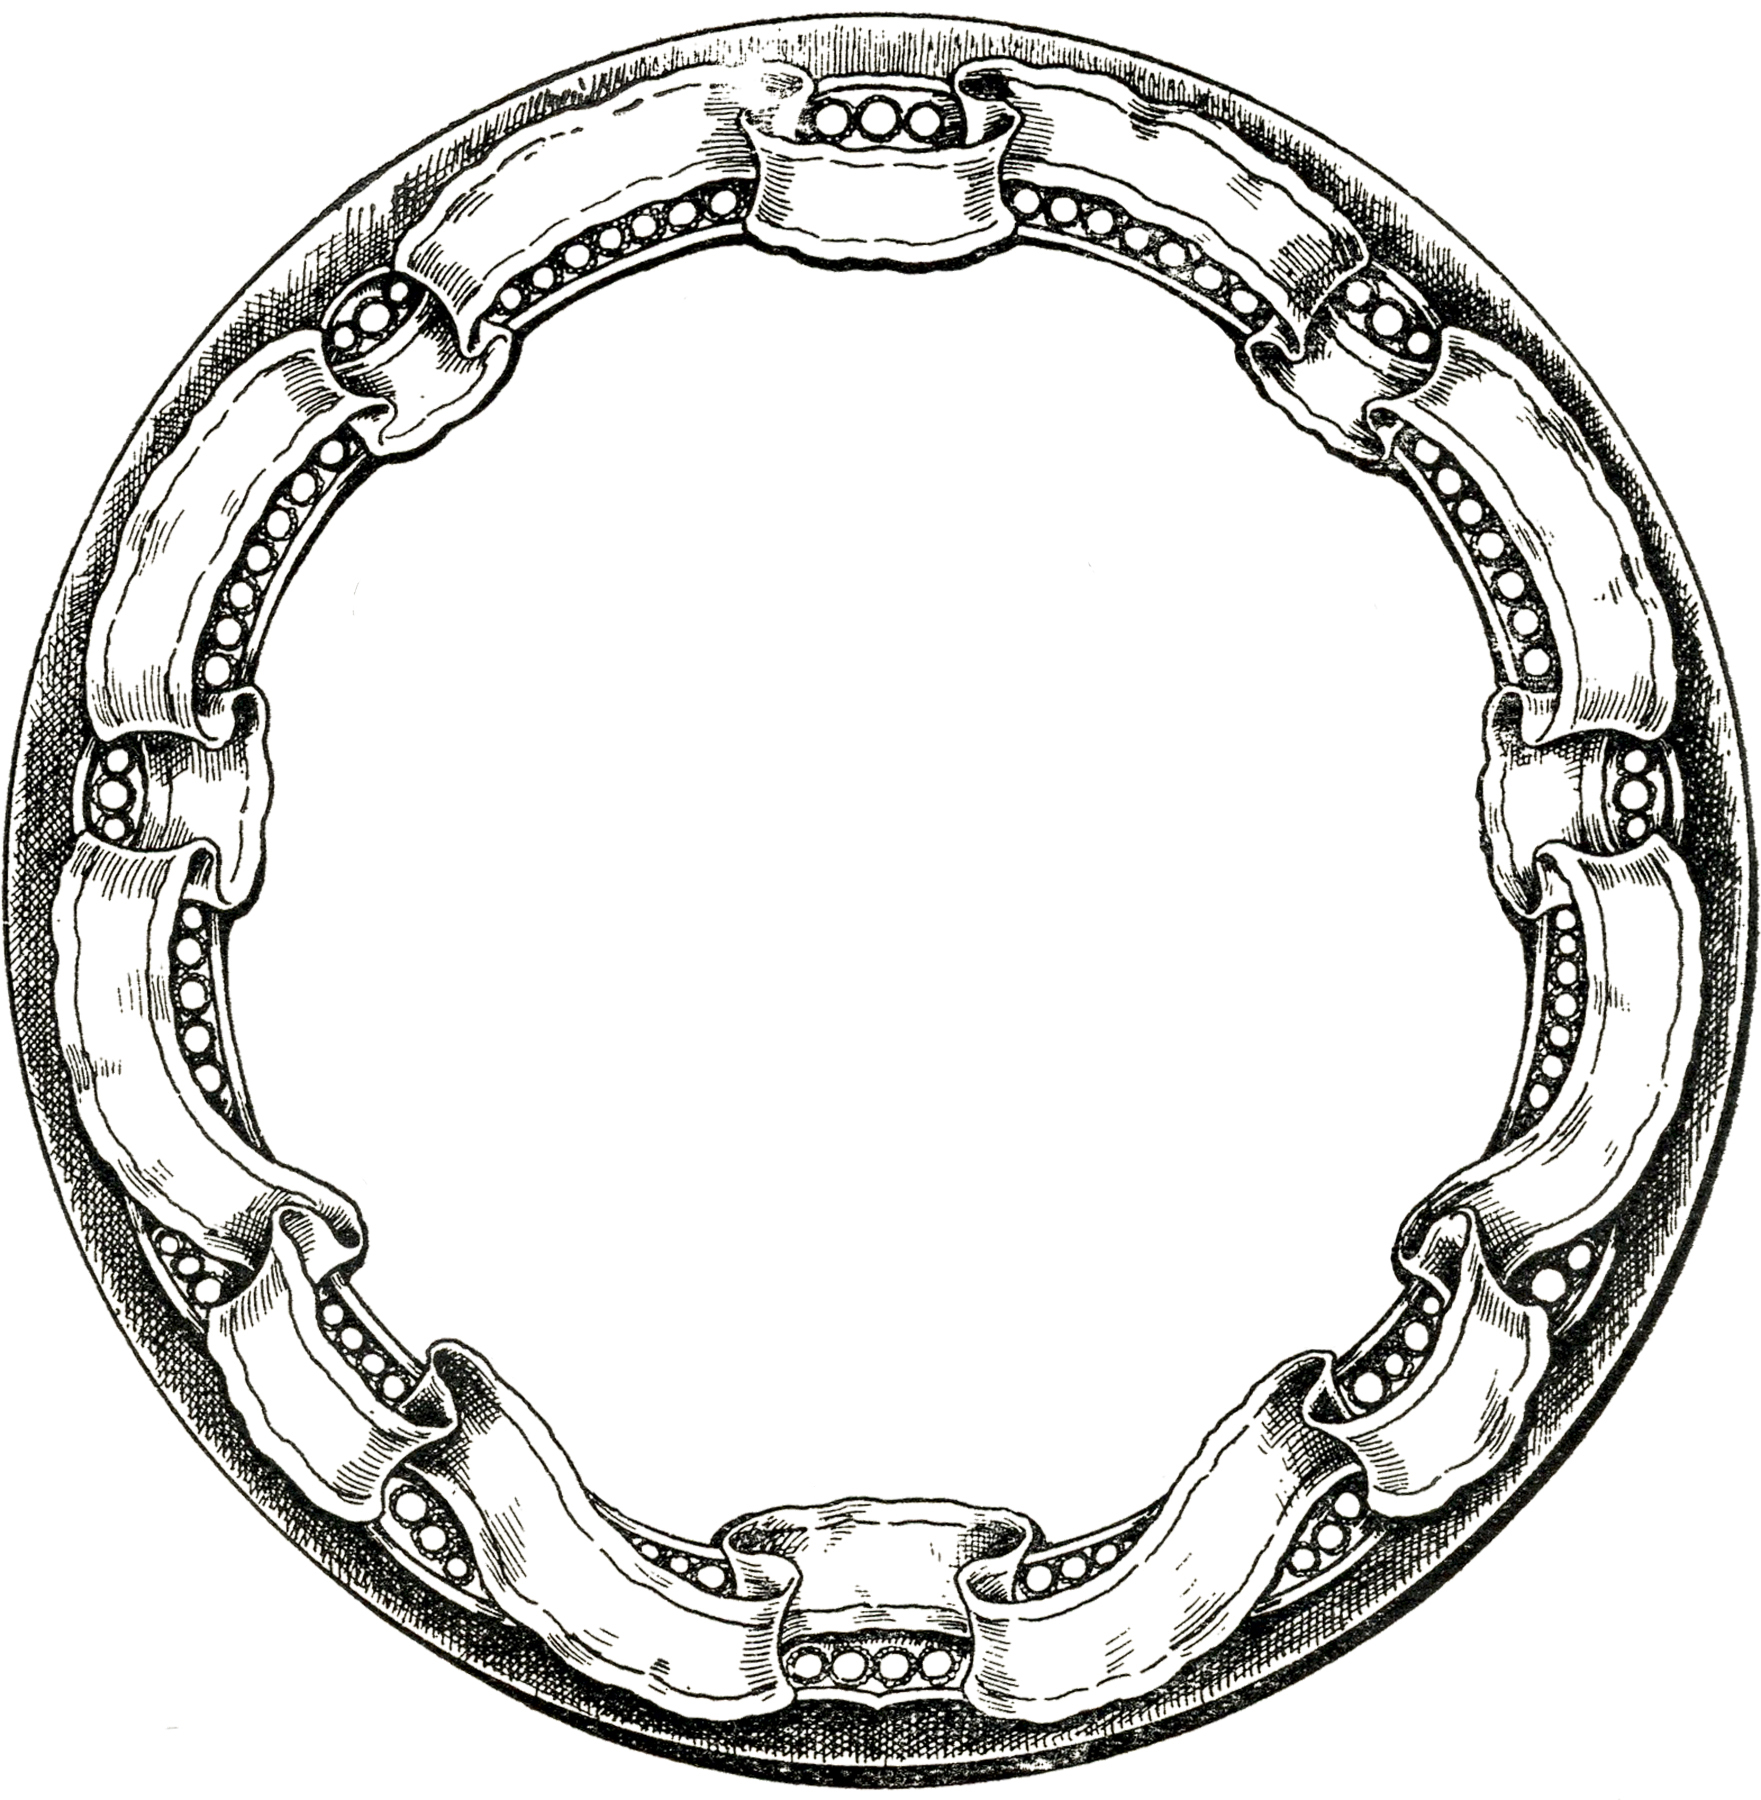 Vintage Round Graphic Frame With Ribbon Border